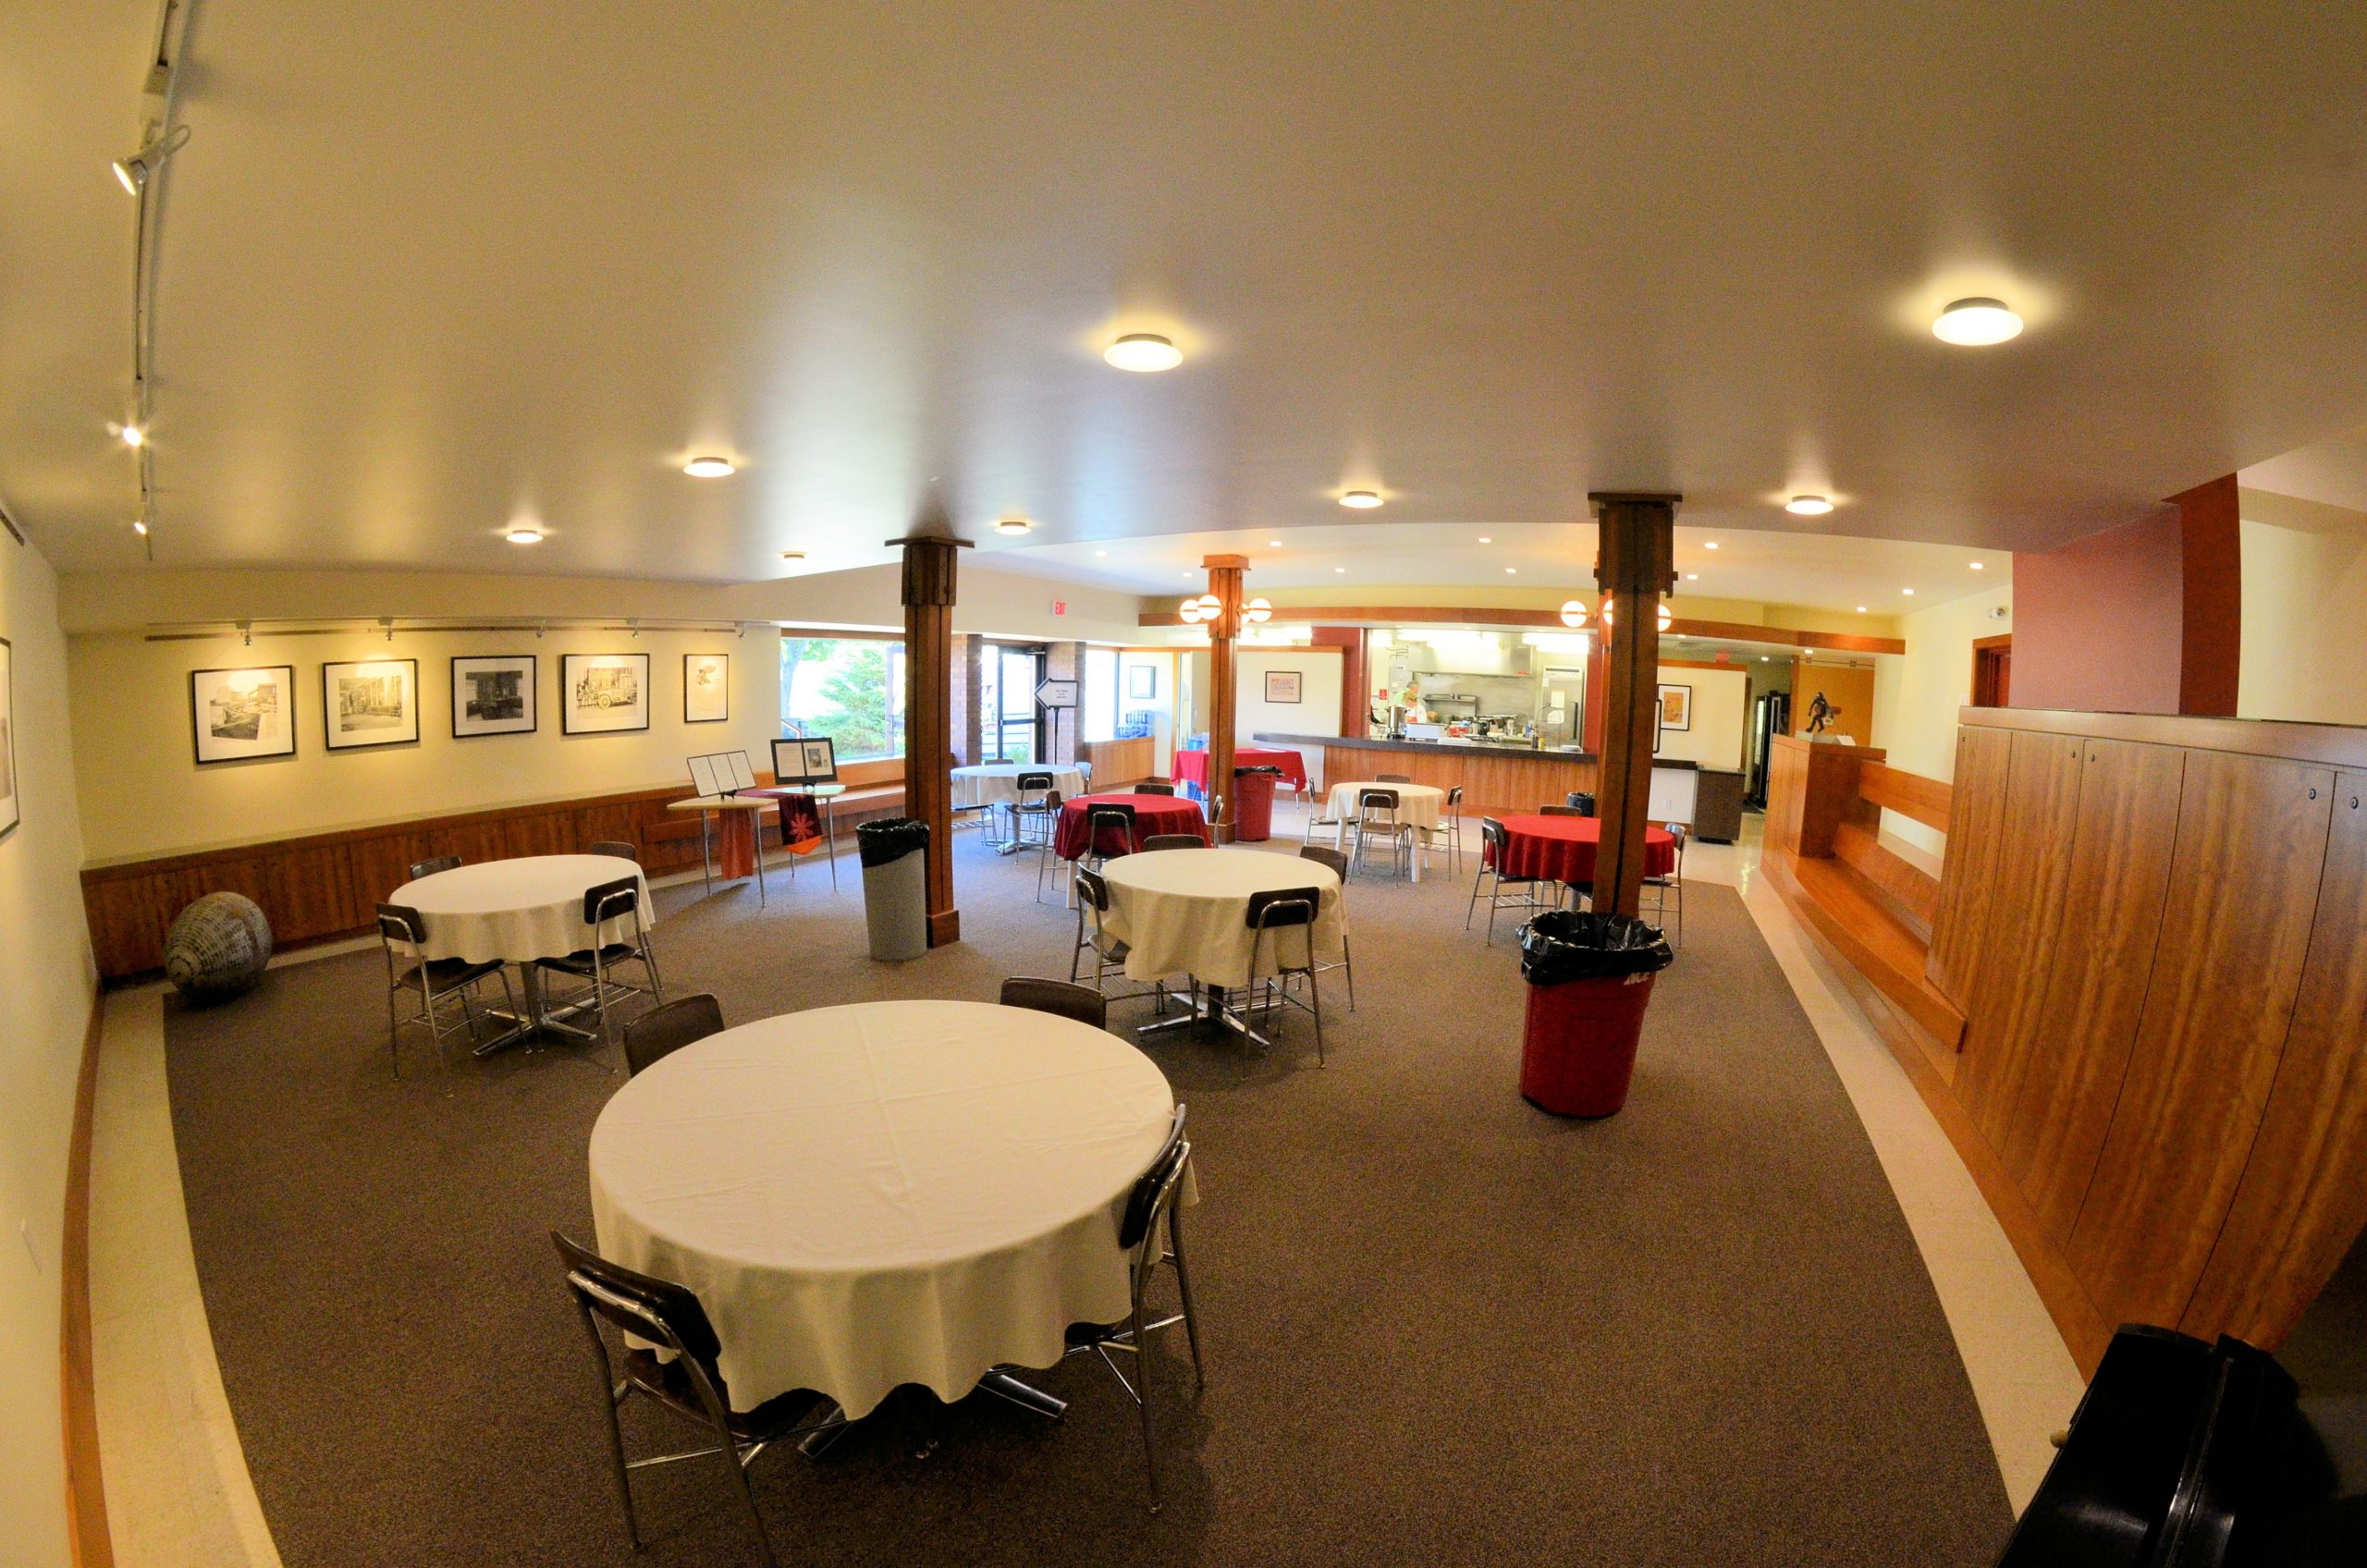 Cafeteria space for rent, linen tablecloths on round tables with cherrywood trim benches and cabinets